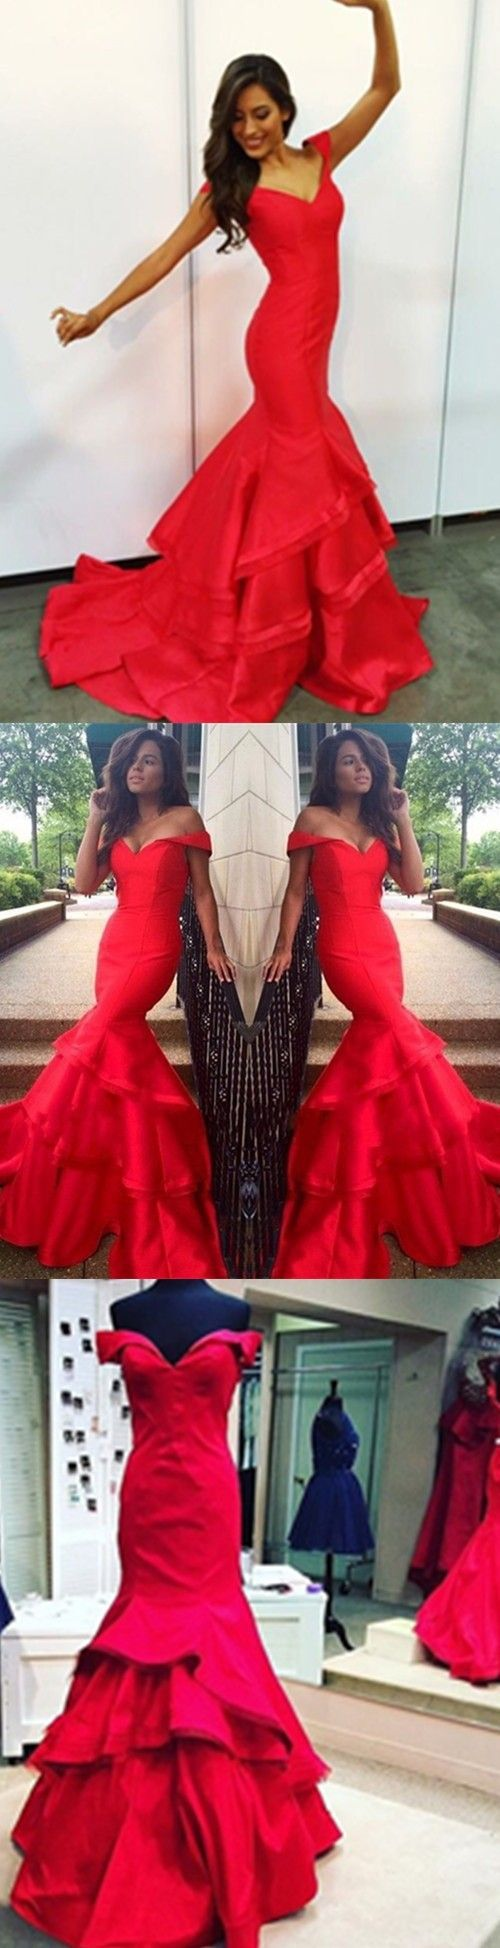 best prom images on pinterest casamento classy dress and